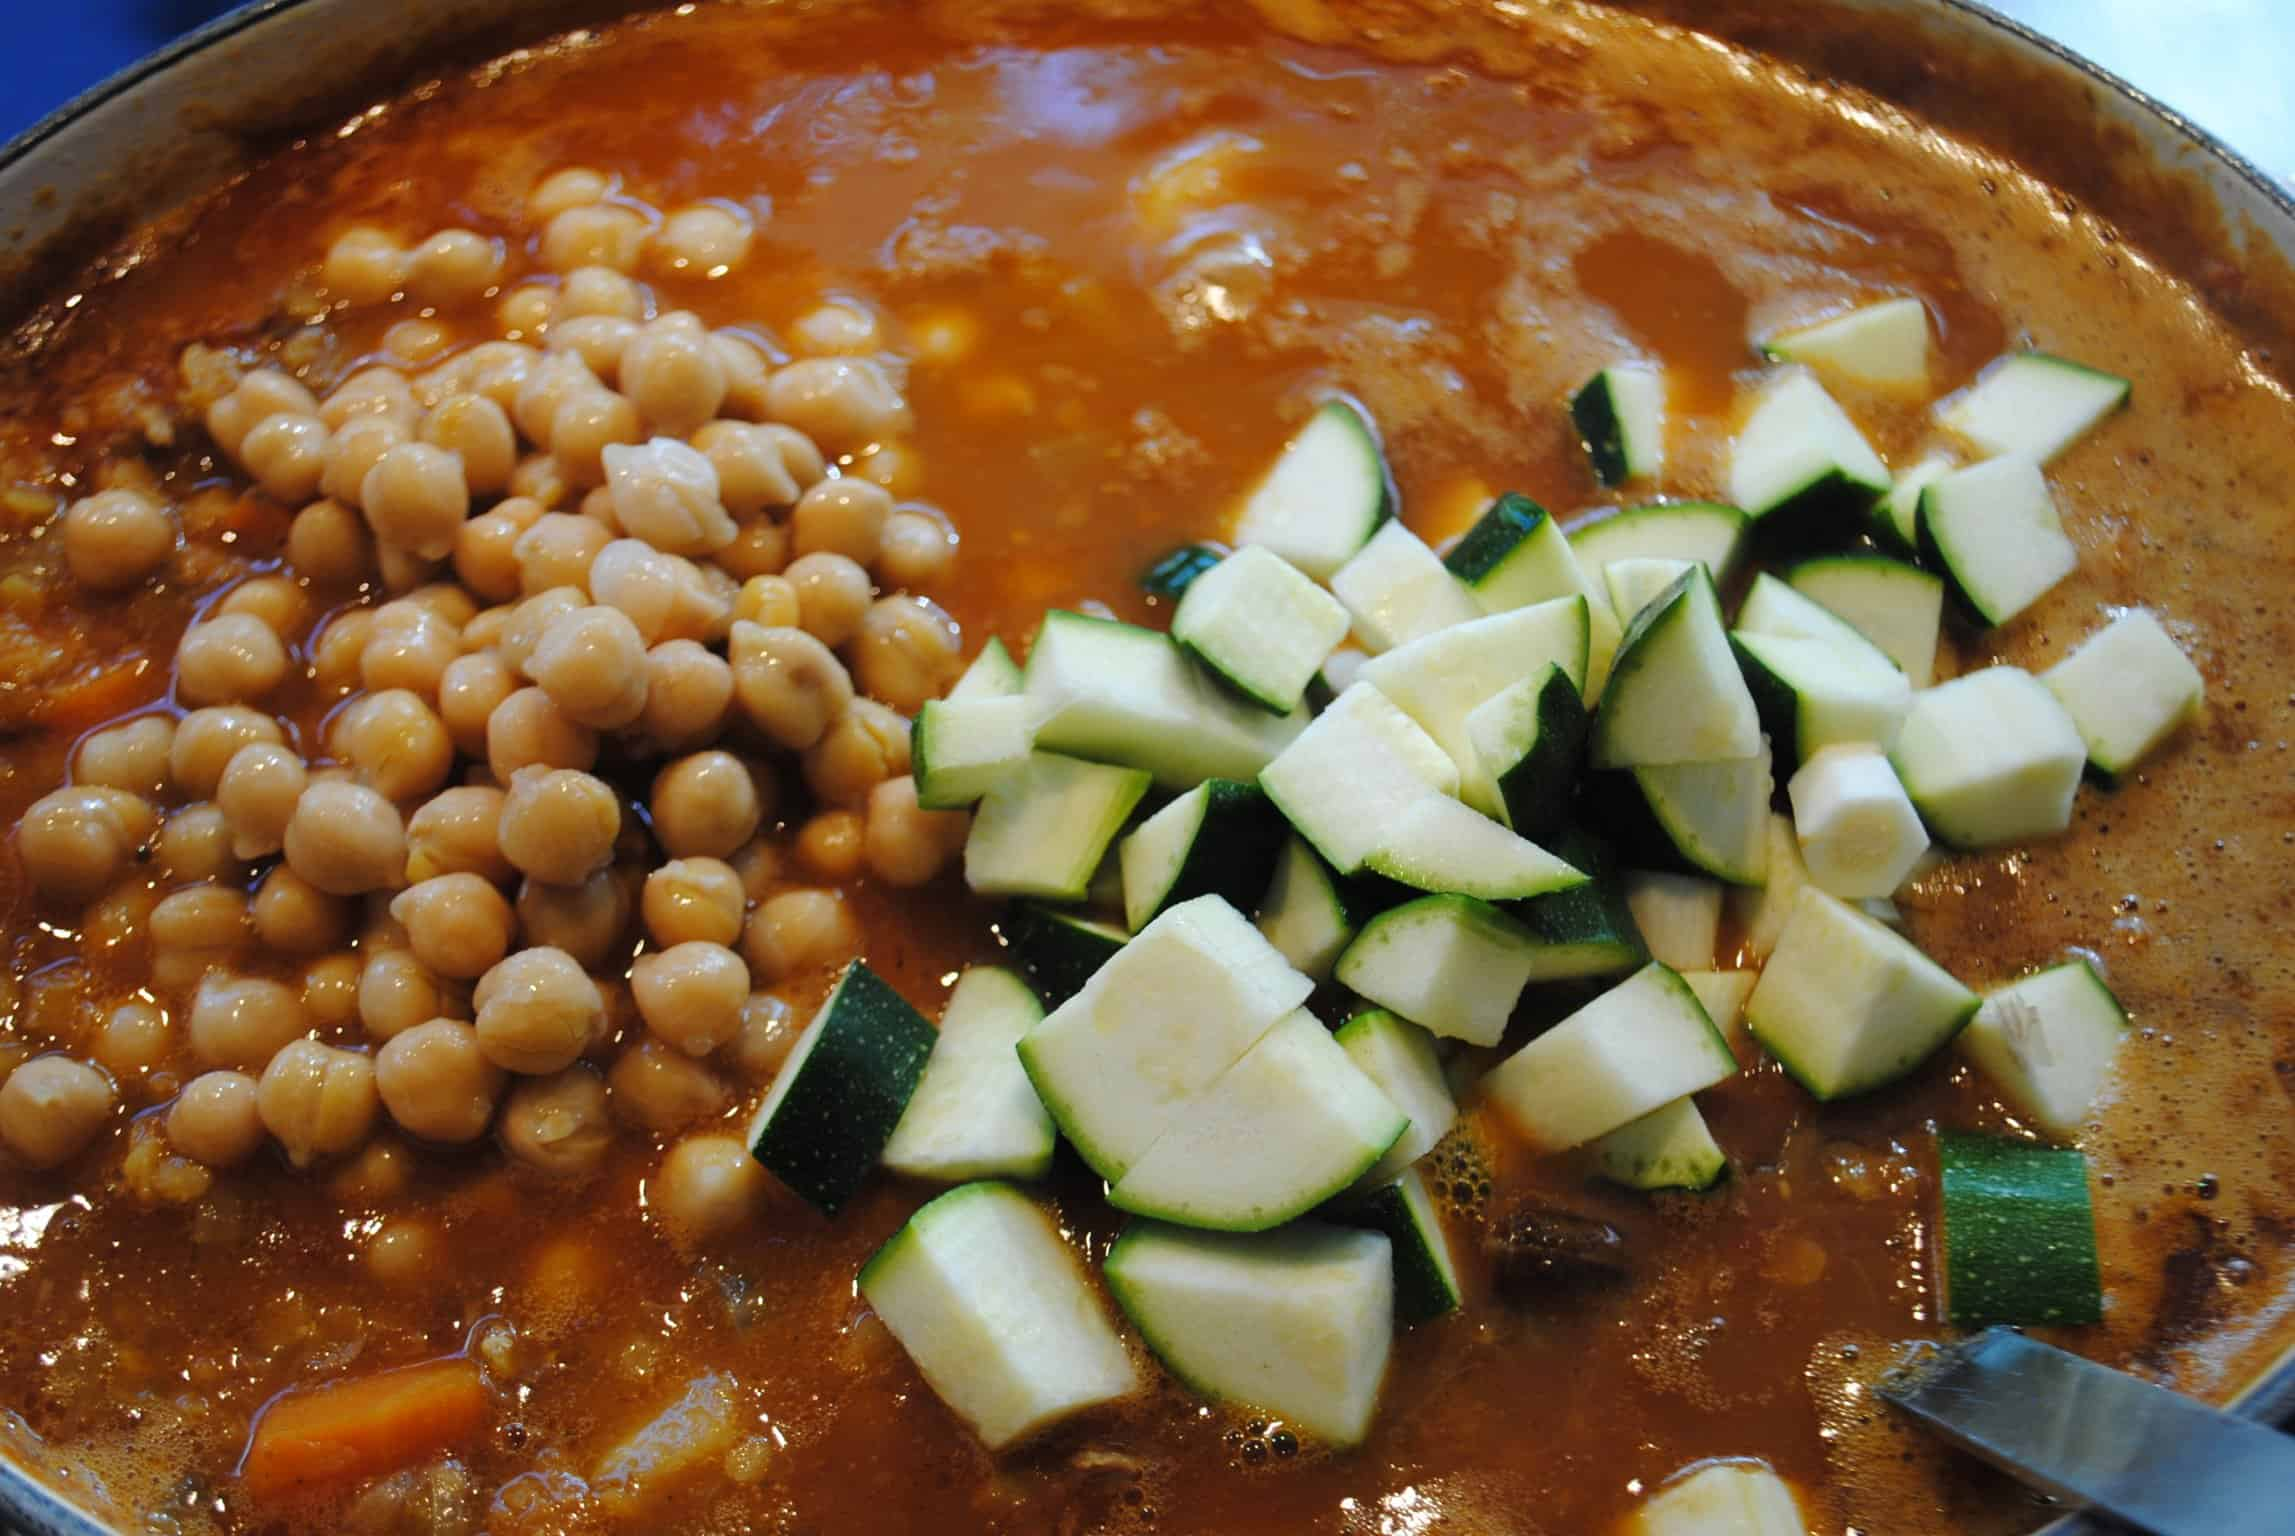 Zucchini and and chickpeas added to the harira soup pot